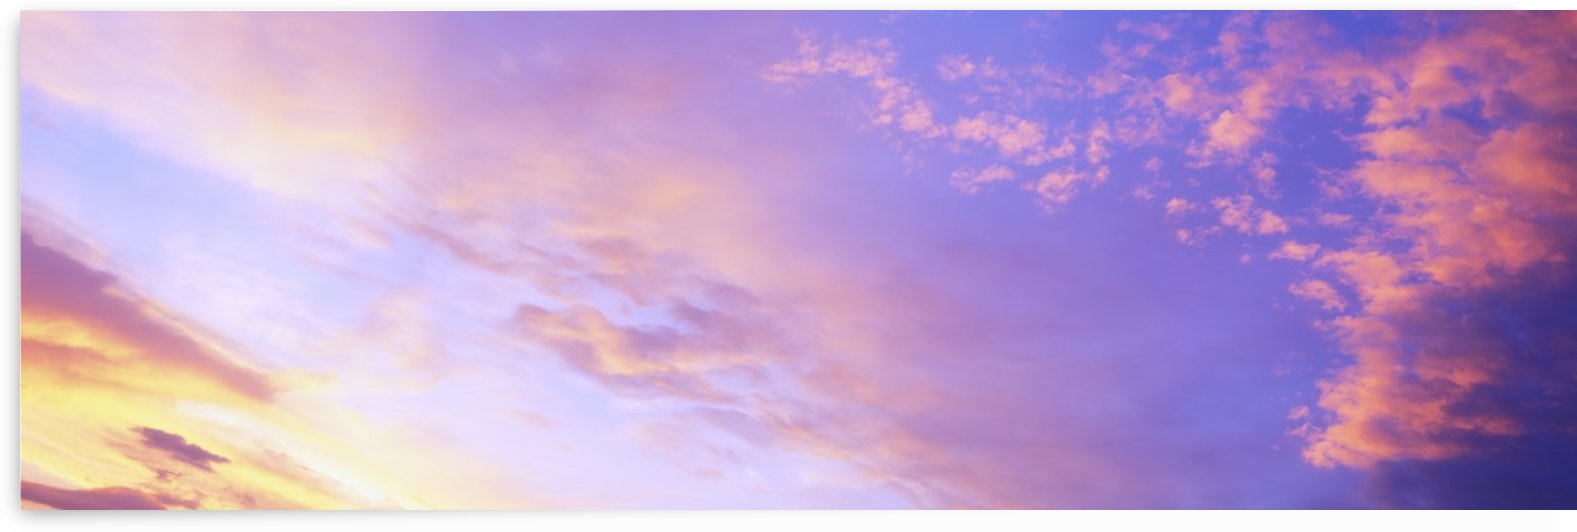 Panoramic View Of The Sky by PacificStock